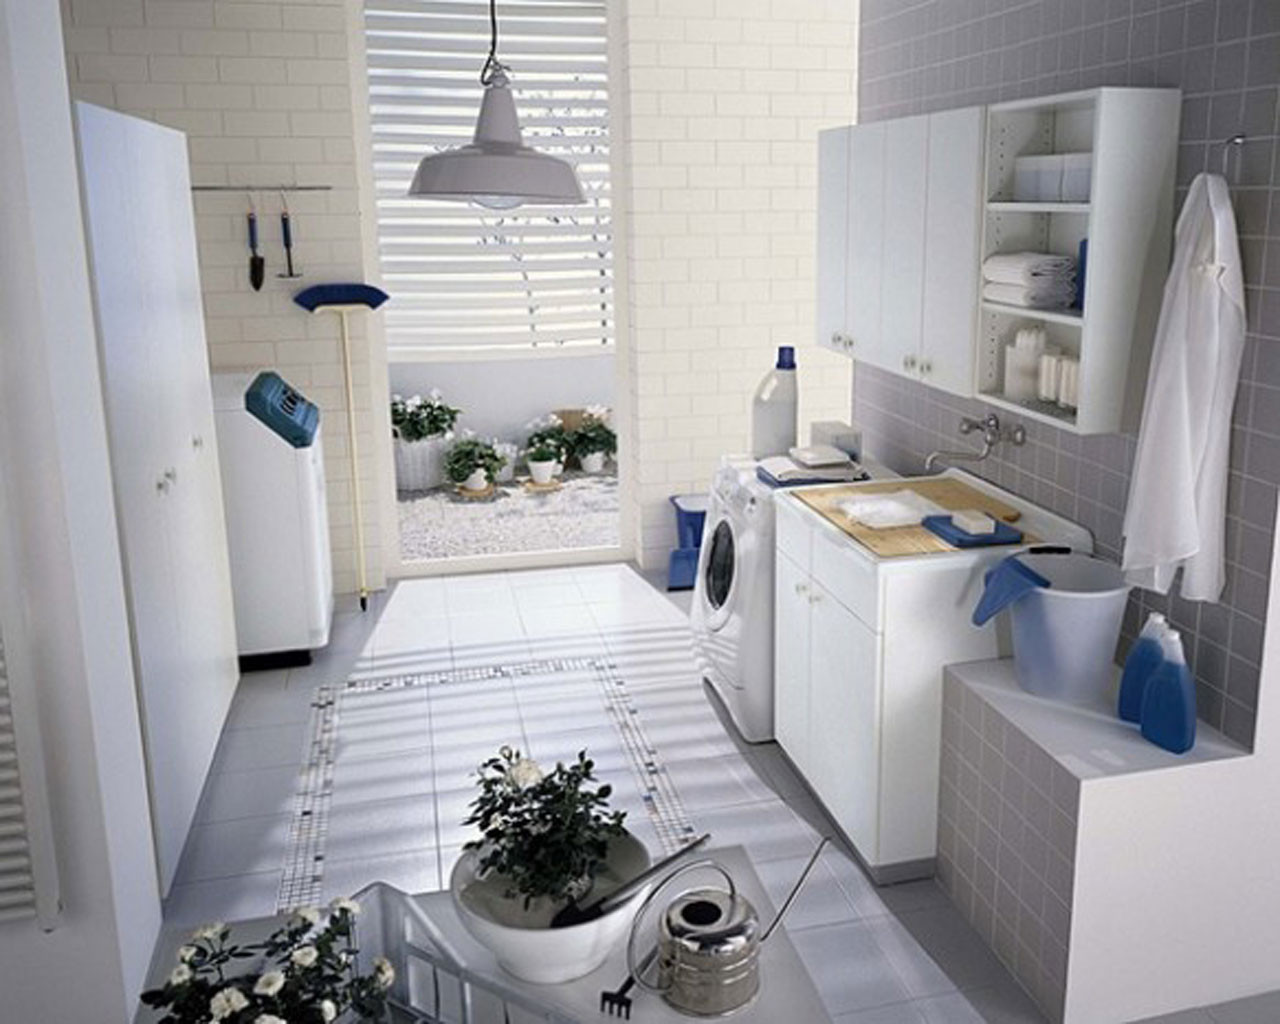 Best ideas about Laundry Room Designs . Save or Pin Tips to Design Bathroom Laundry Room Now.